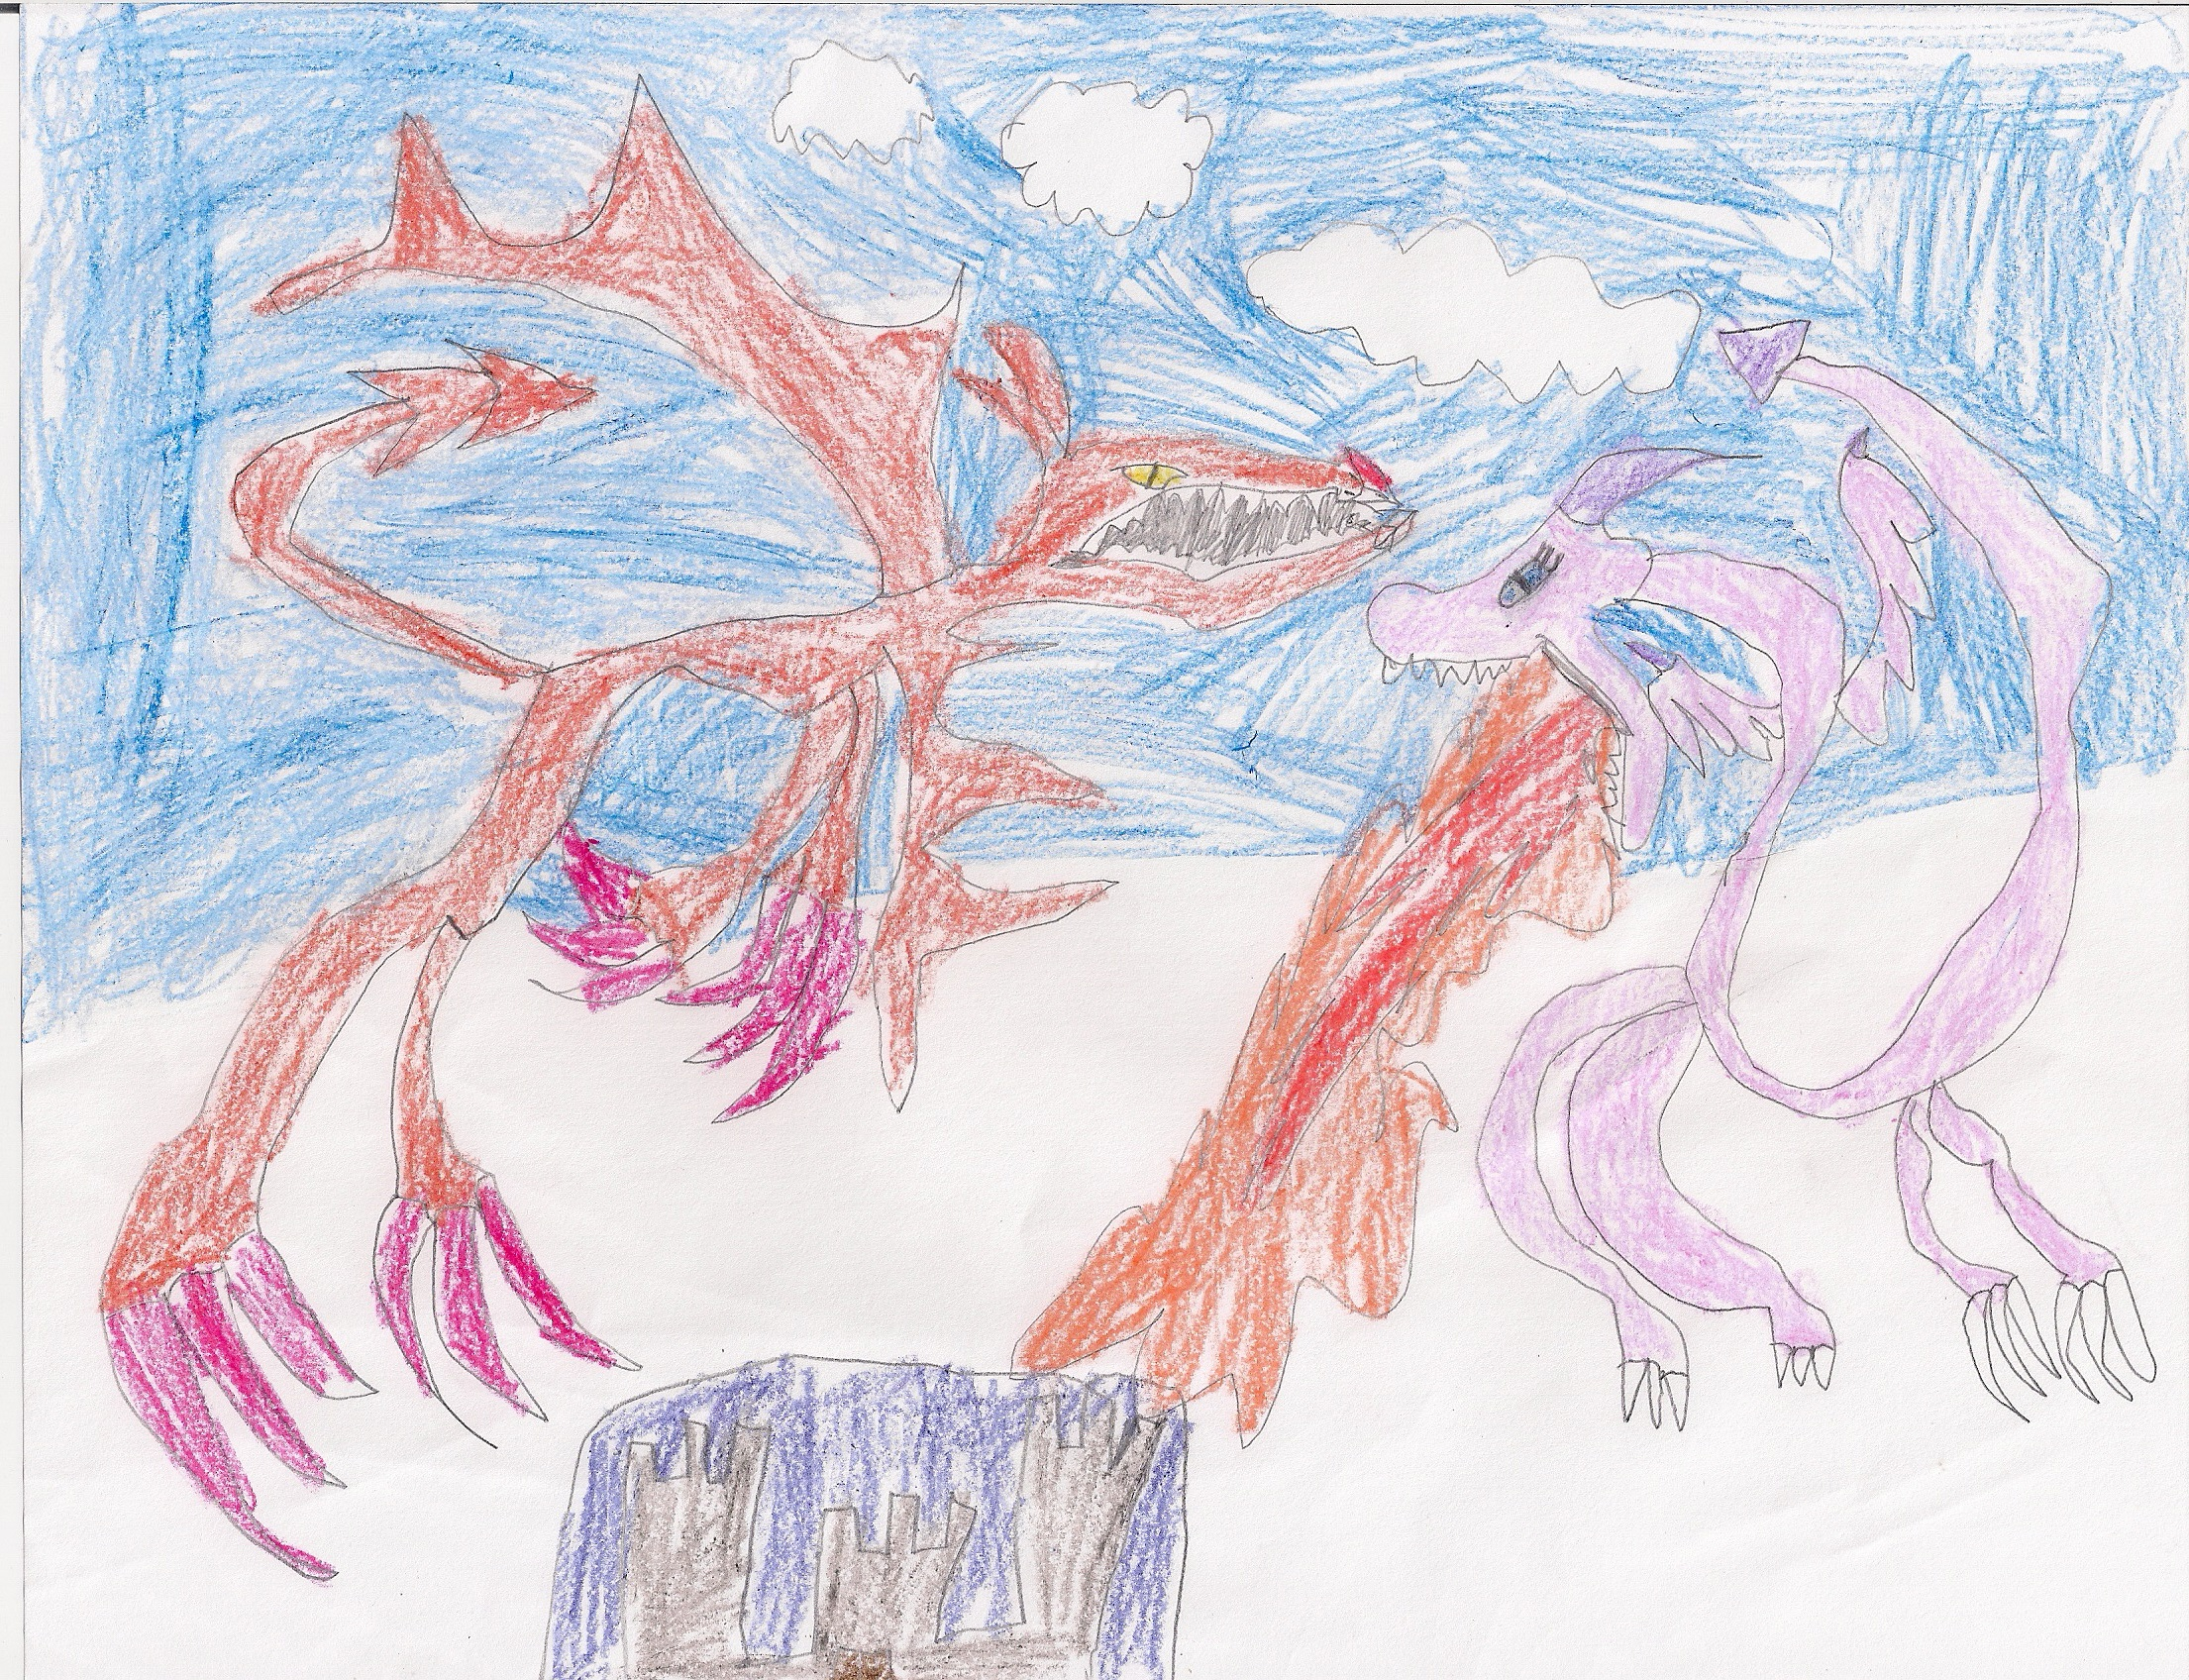 One of my son's drawings